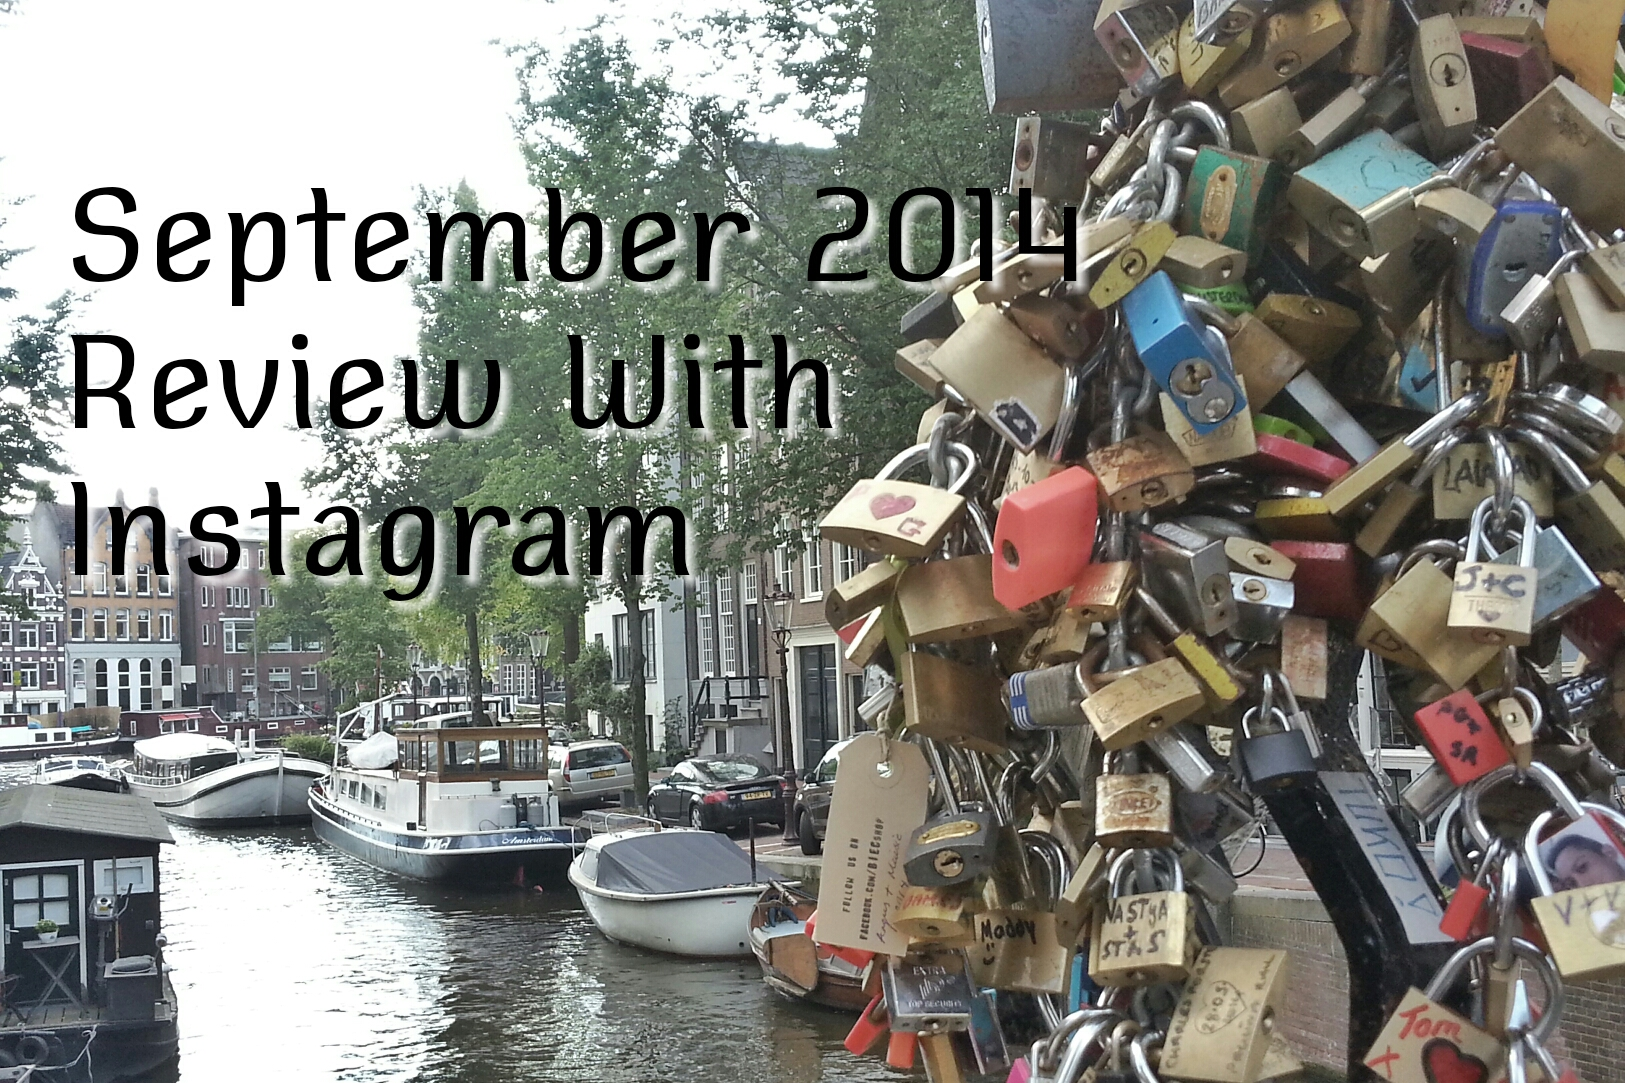 September 2014 Review with Instagram